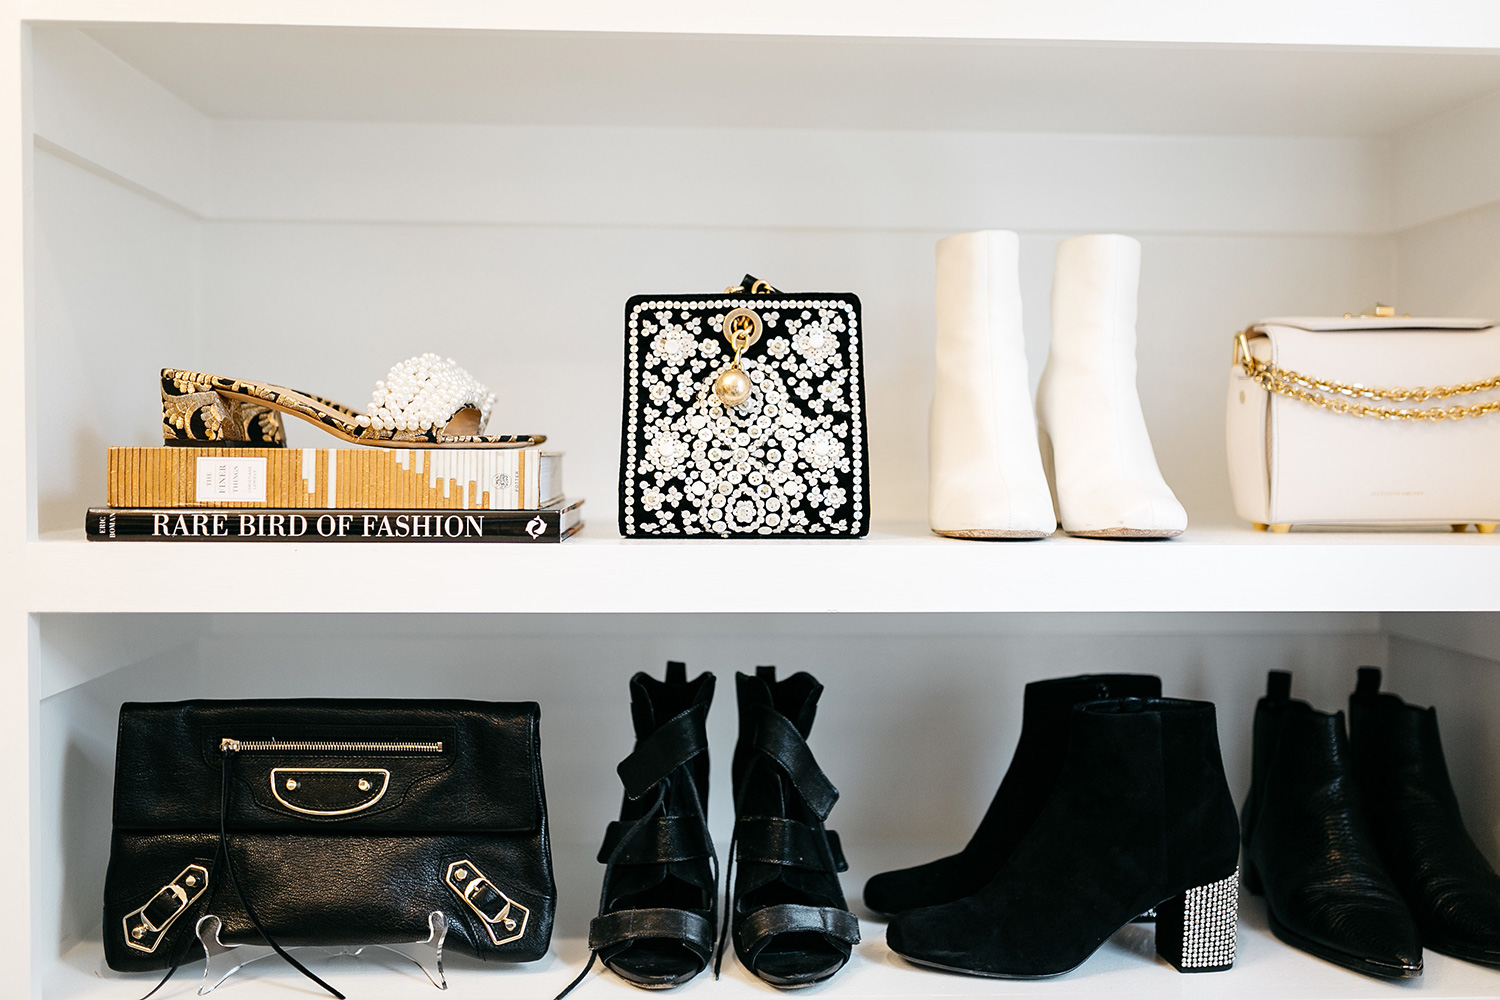 Master Bedroom Closet Design | Shoe and Handbag Storage